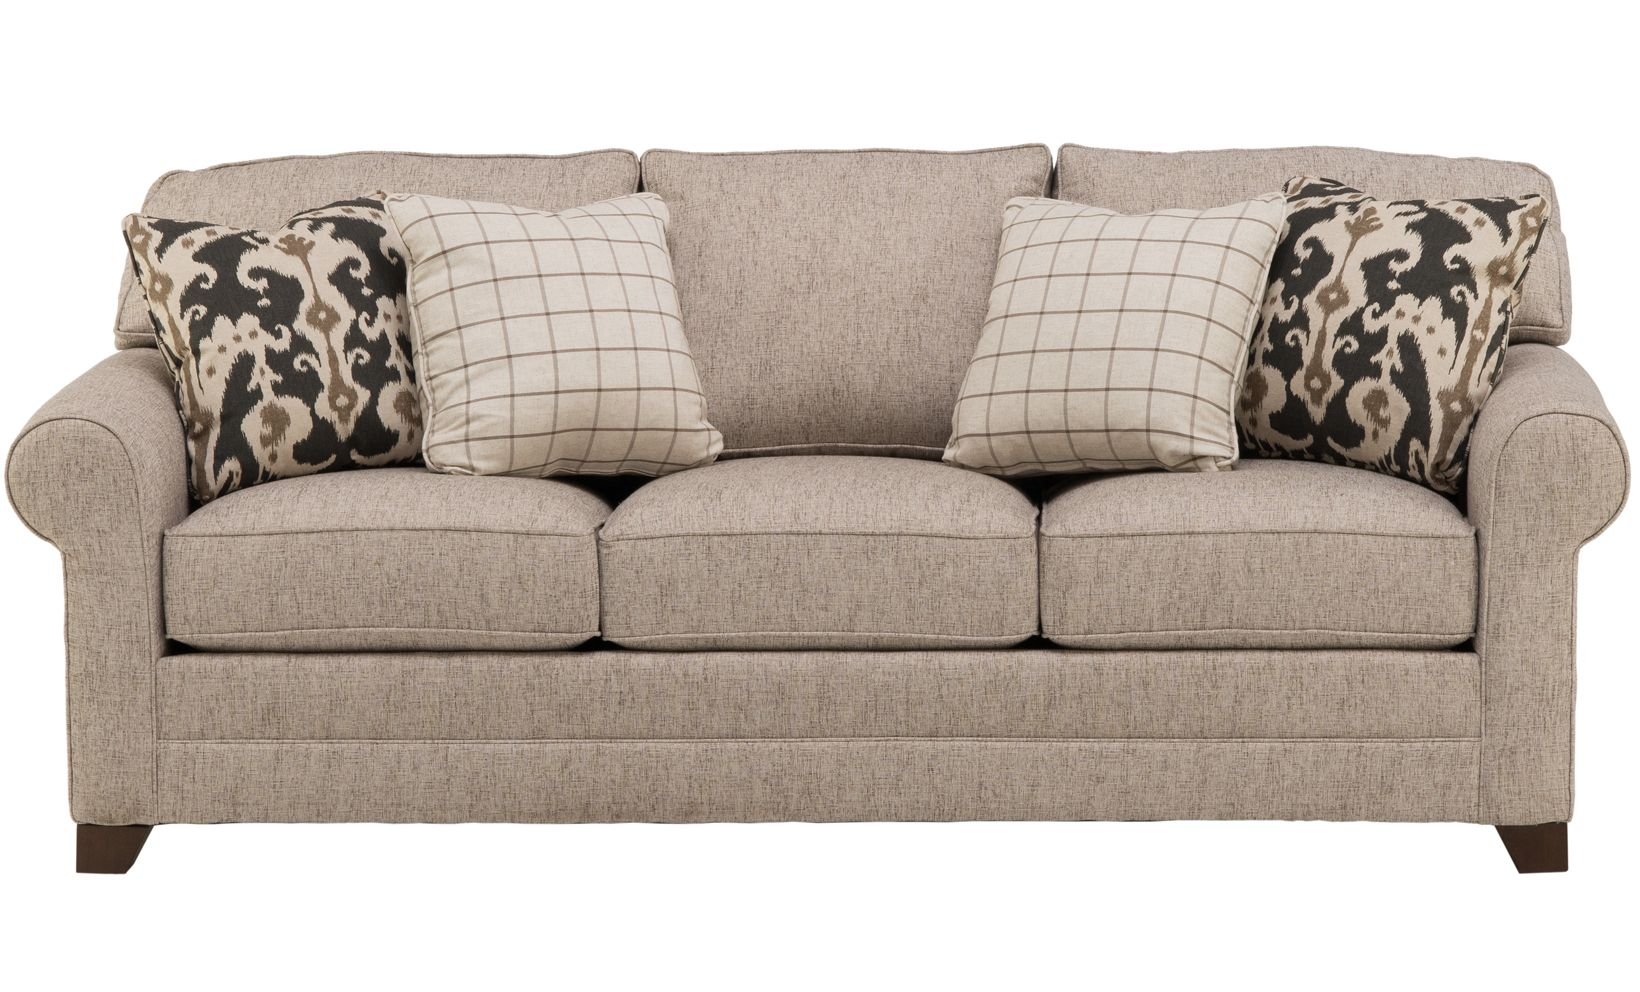 Winston Grey Sofa Living Room Leather Couch Makeover Sofa